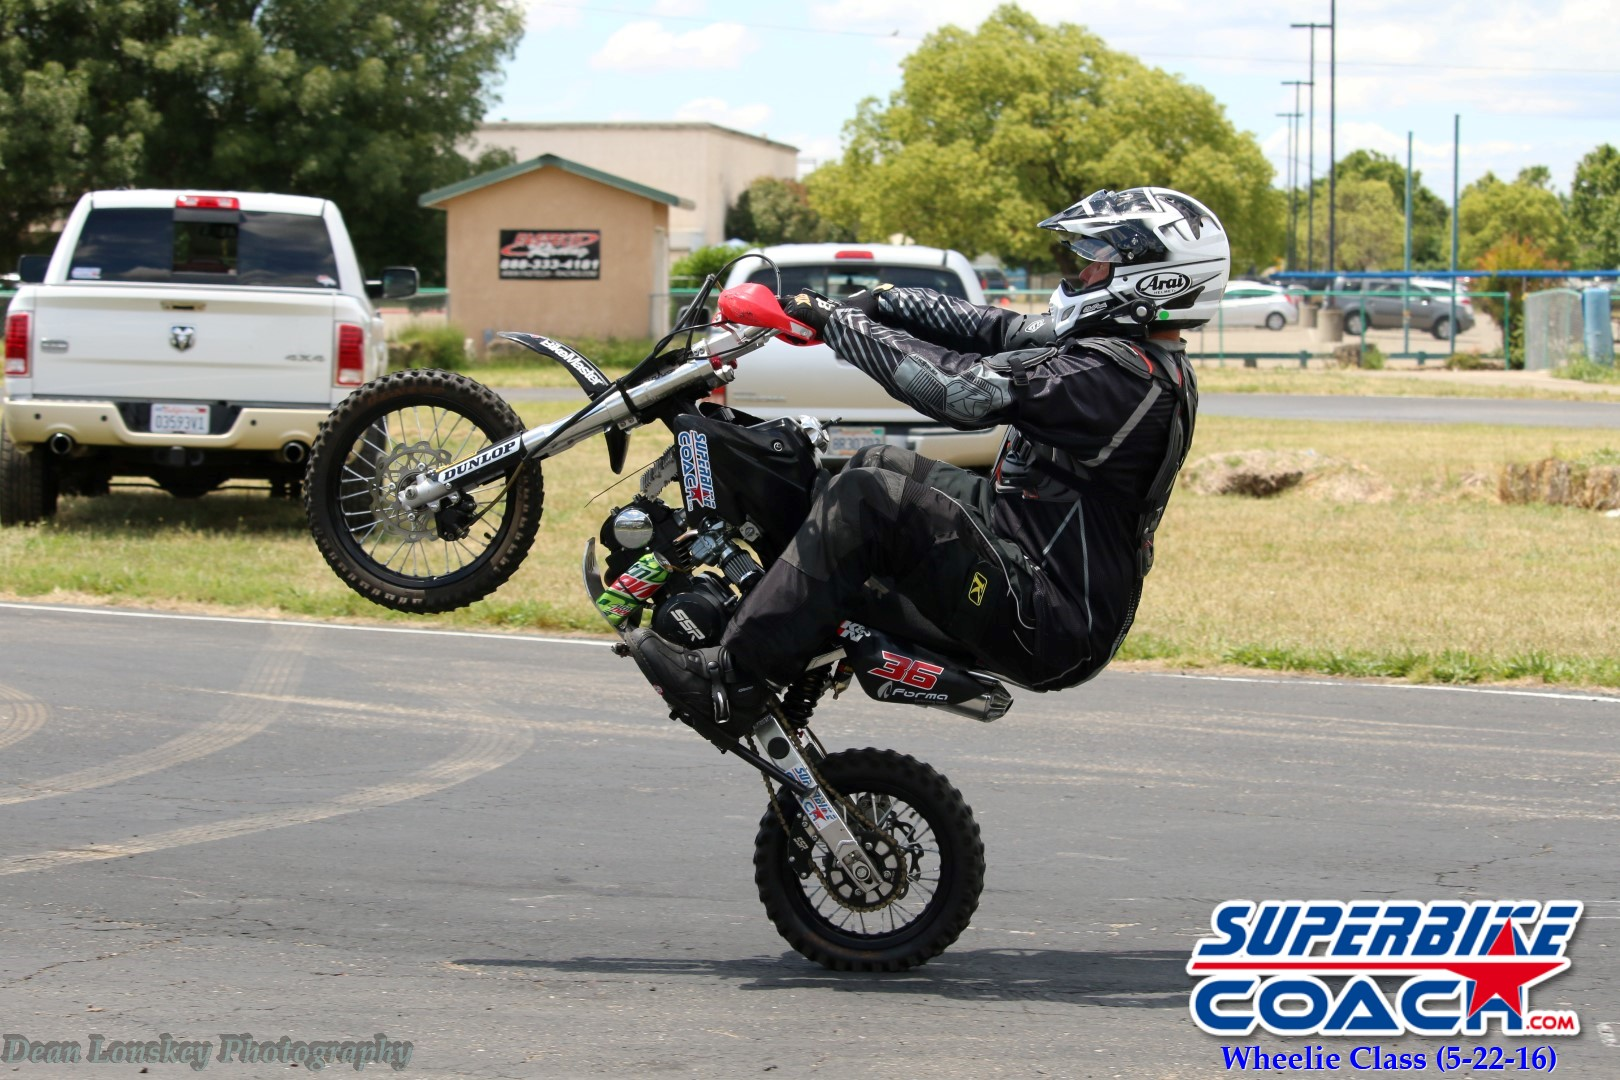 Wheelie Course Superbike Coach Corp